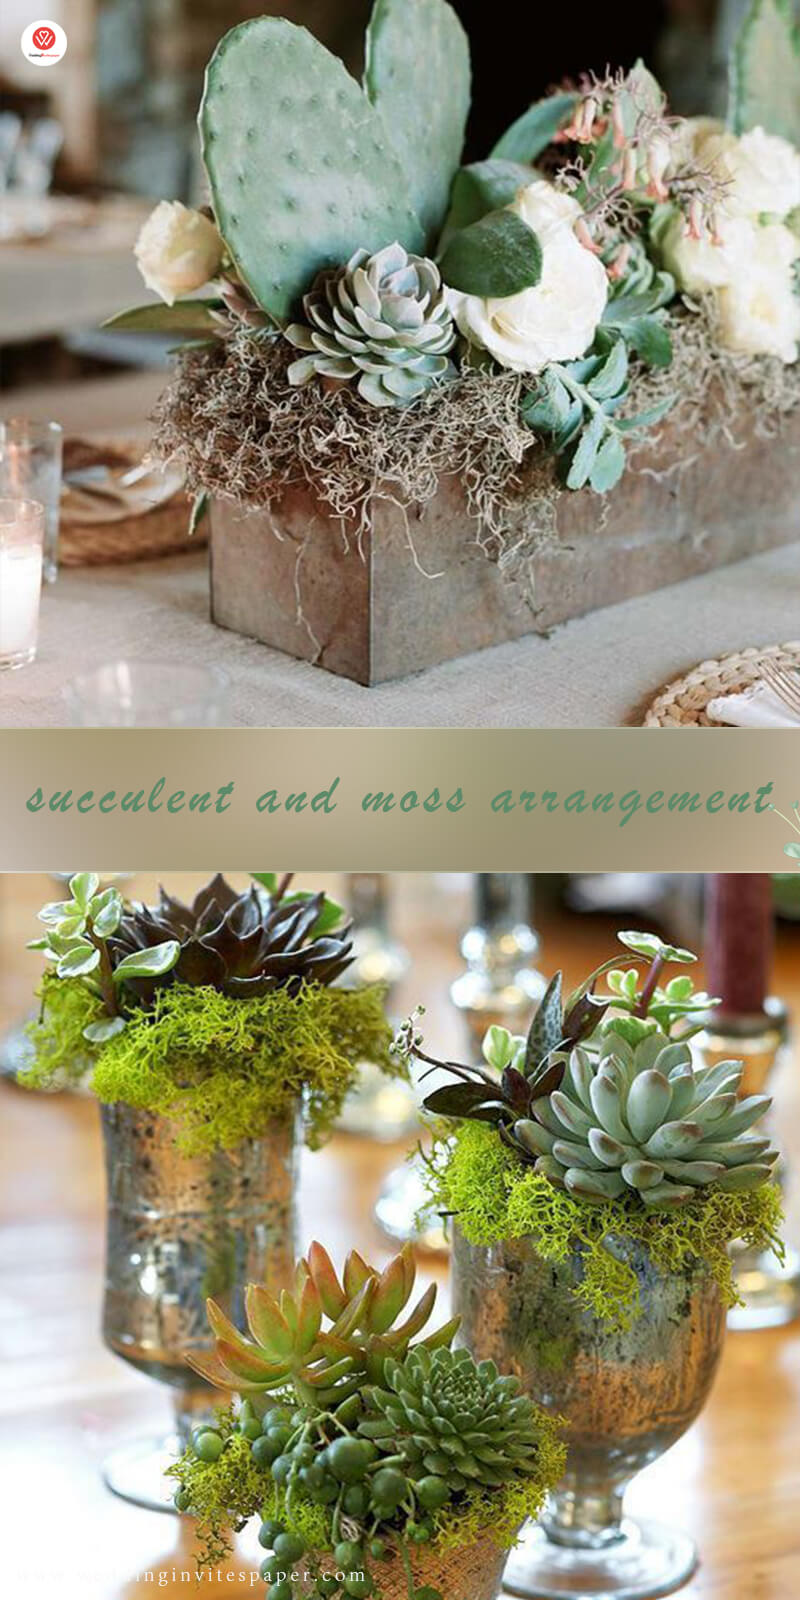 3 succulent and moss arrangement.jpg